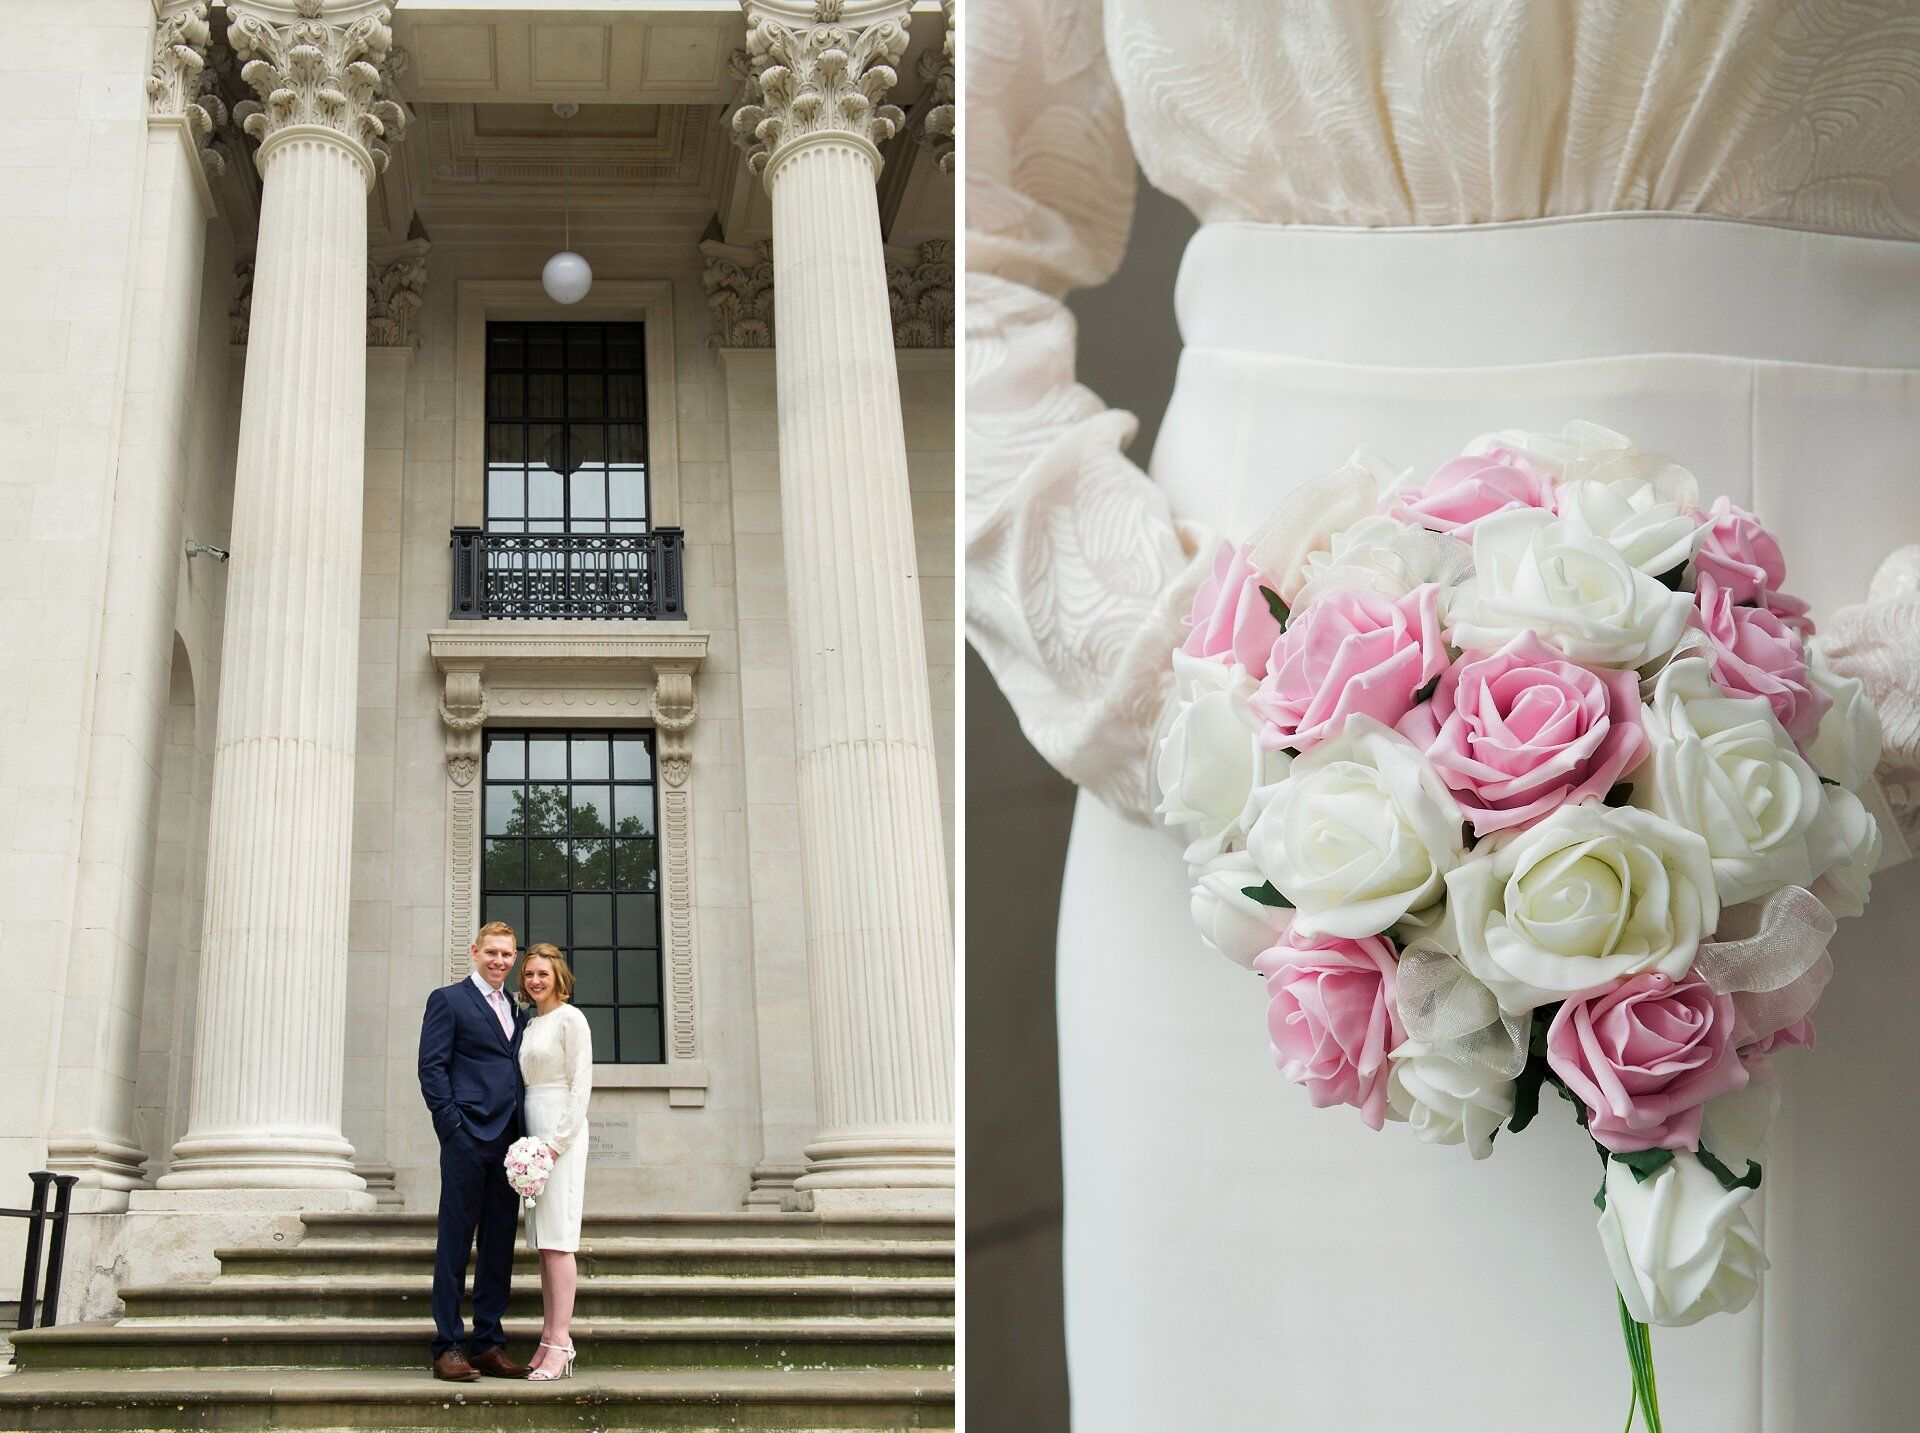 a day to remember westminster civil ceremonies at old marylebone town hall